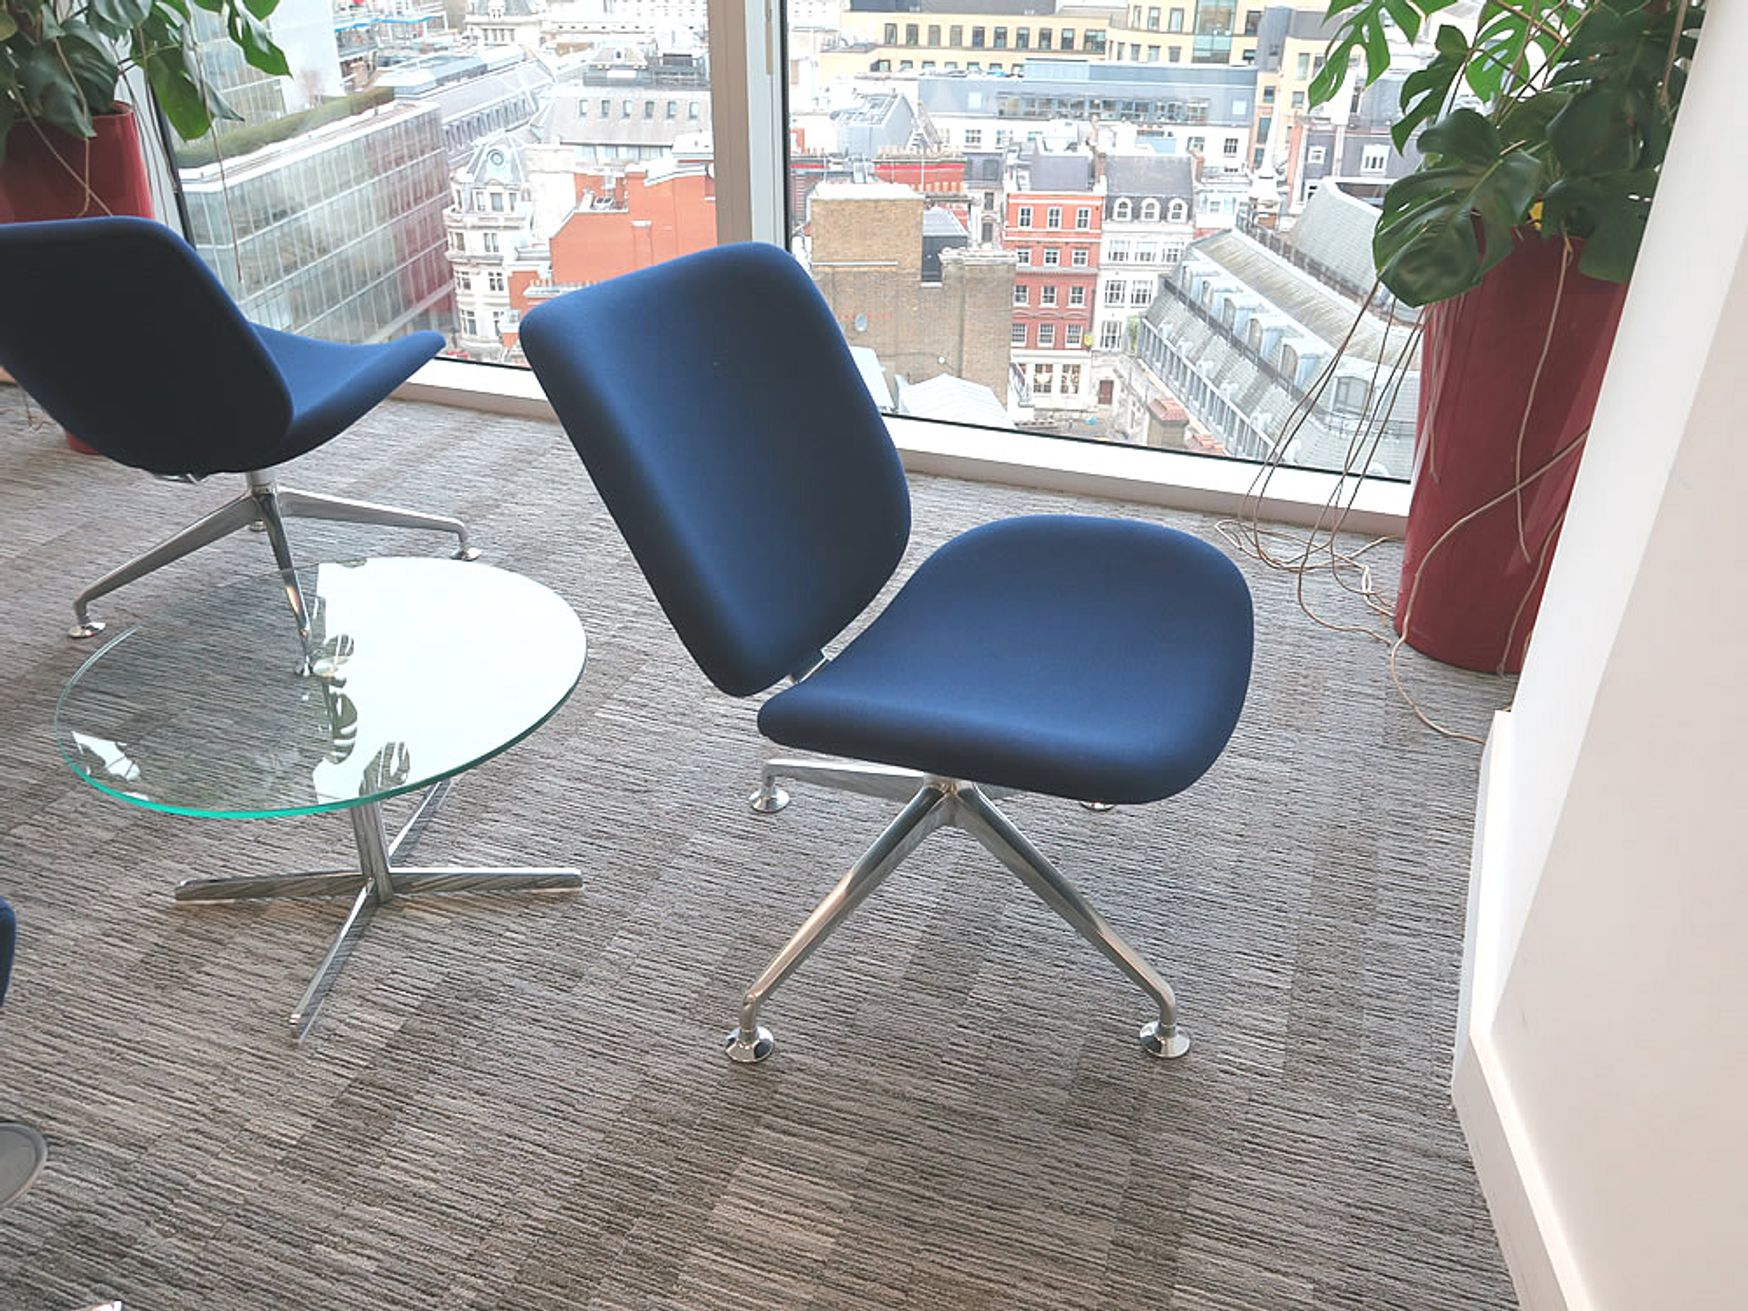 Used Orangebox 'Track' chairs in excellent condition.